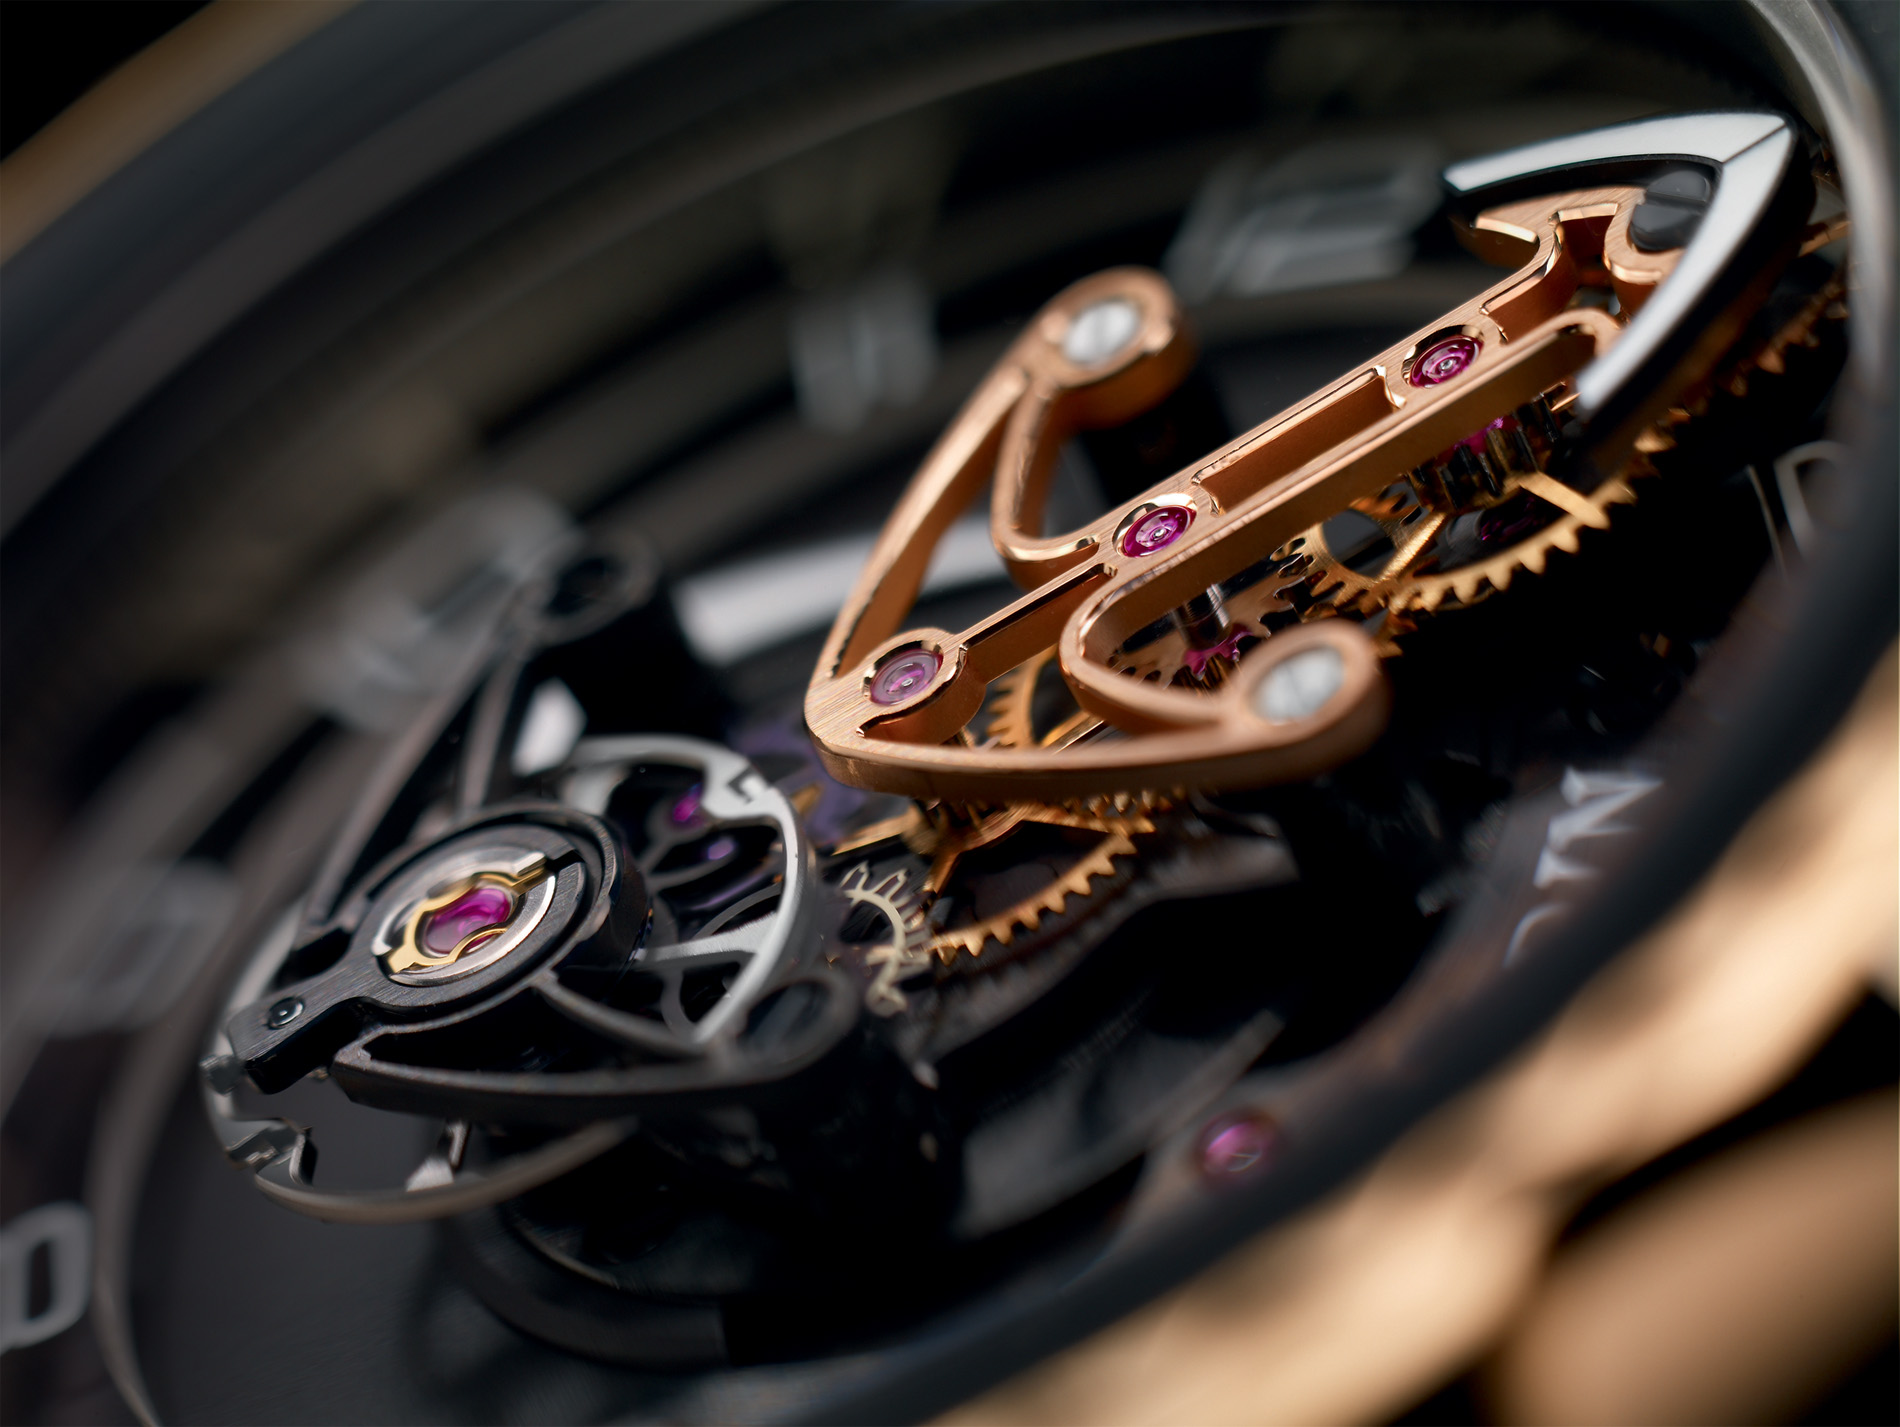 Ulysse Nardin Freak Cruiser - Gear Train